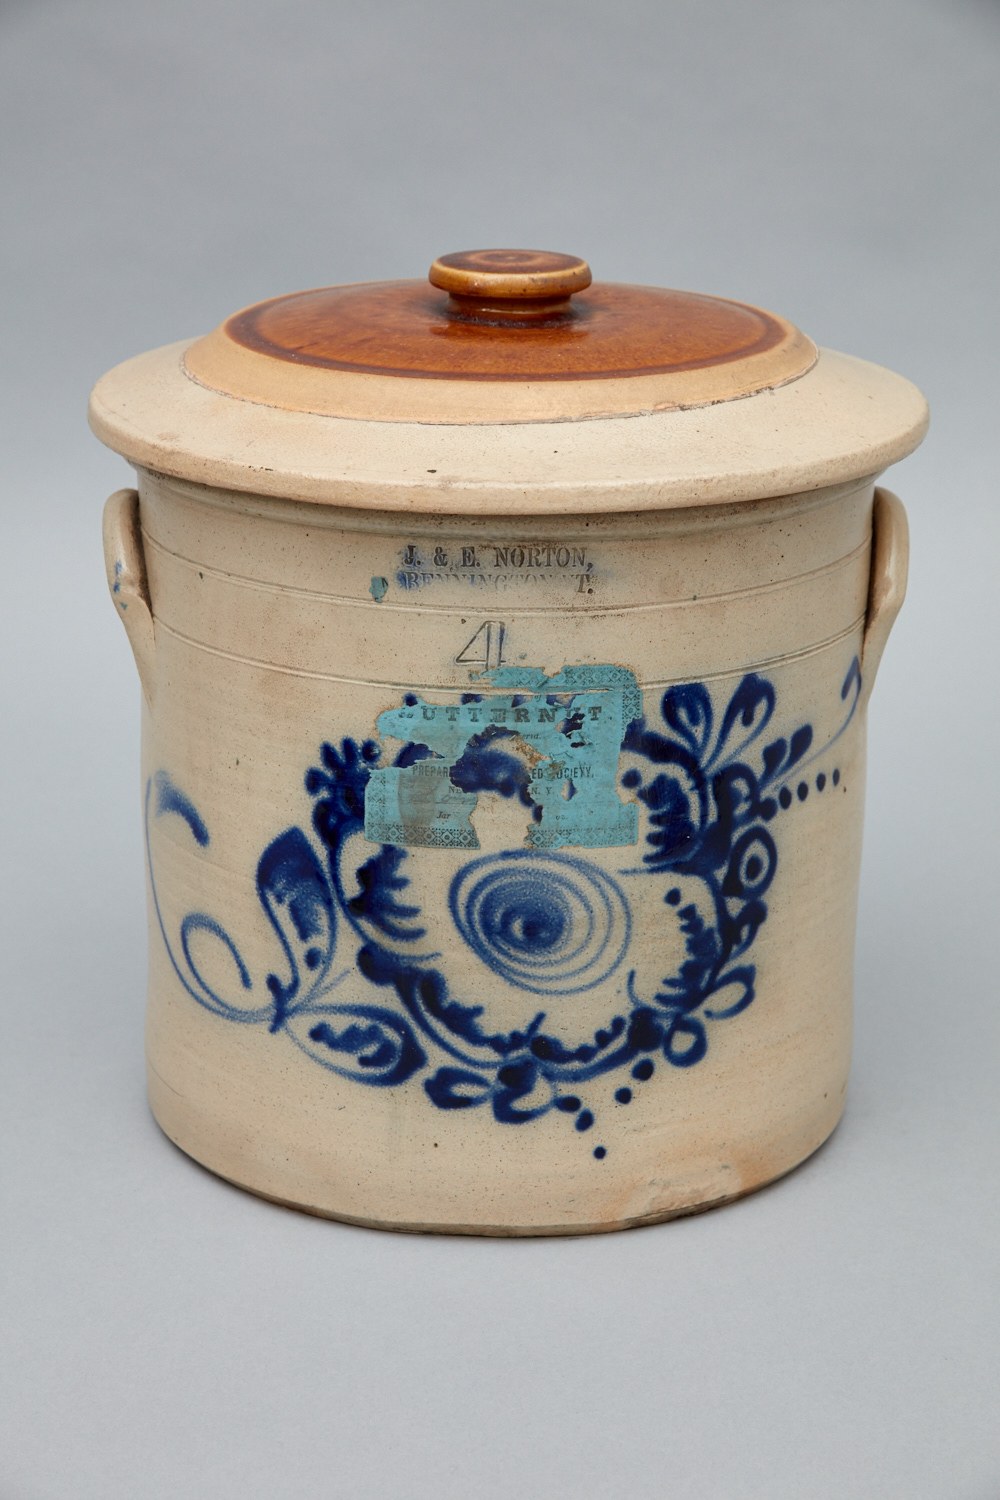 Stoneware Crock, Church Family, Mount Lebanon, NY, ca. 1850,